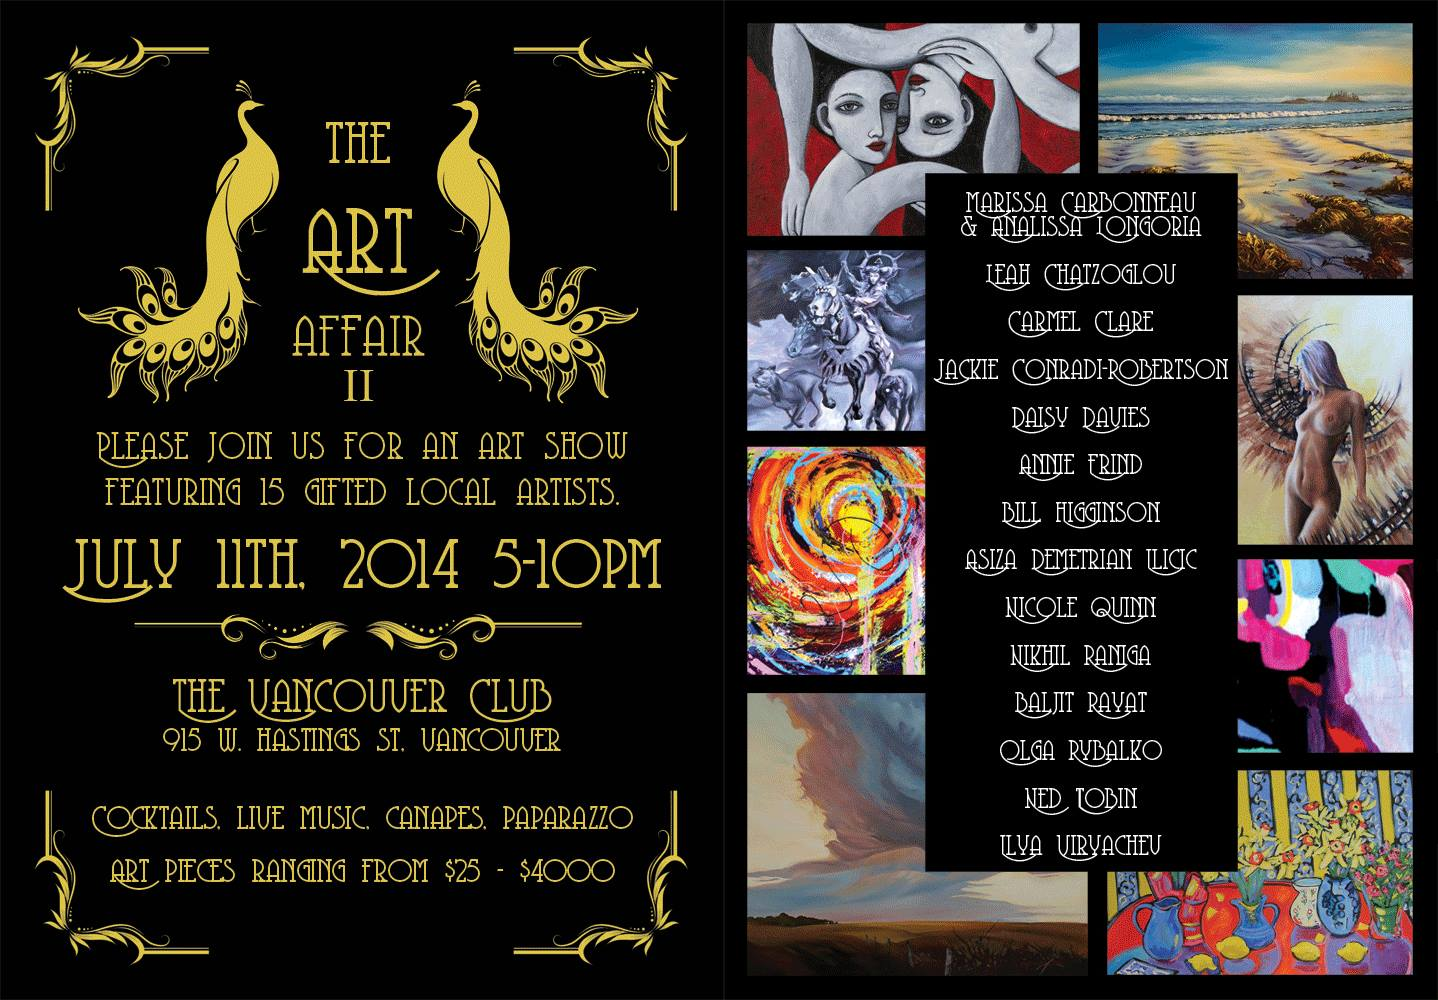 The Art Affair II - The Vancouver Club - July 11 2014